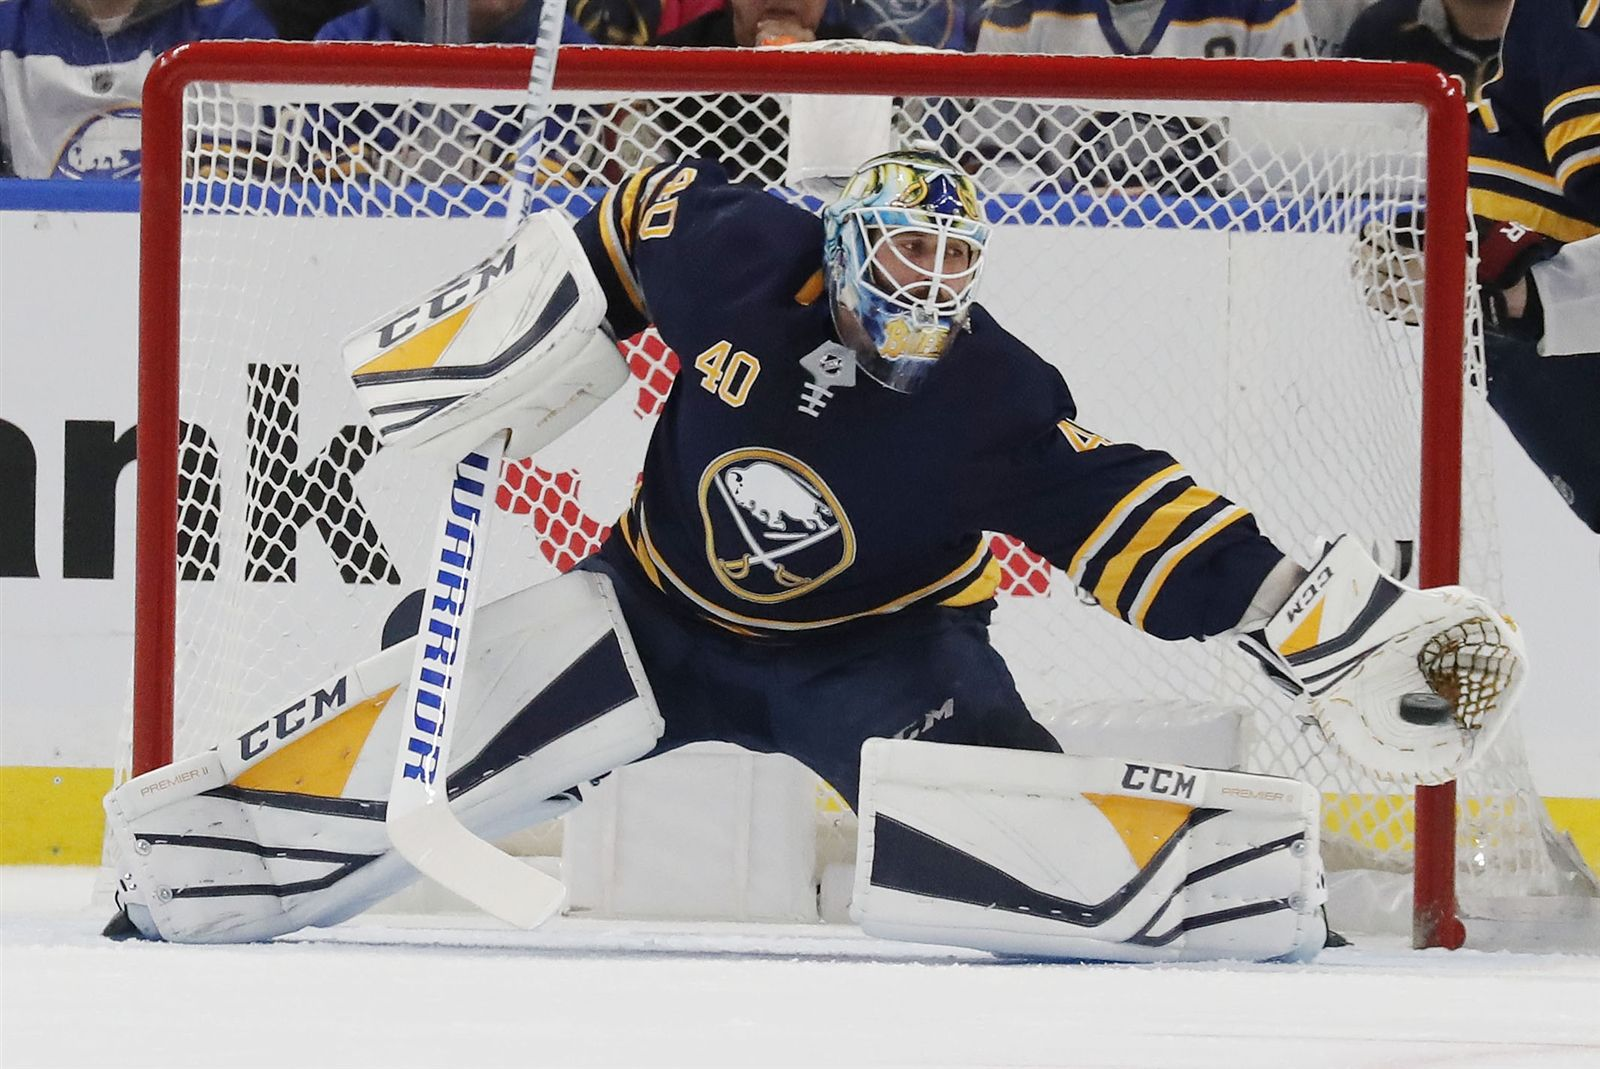 The Buffalo Sabres' Carter Hutton makes a save in the first period at KeyBank Center in Buffalo on Wednesday, Dece. 13, 2018.